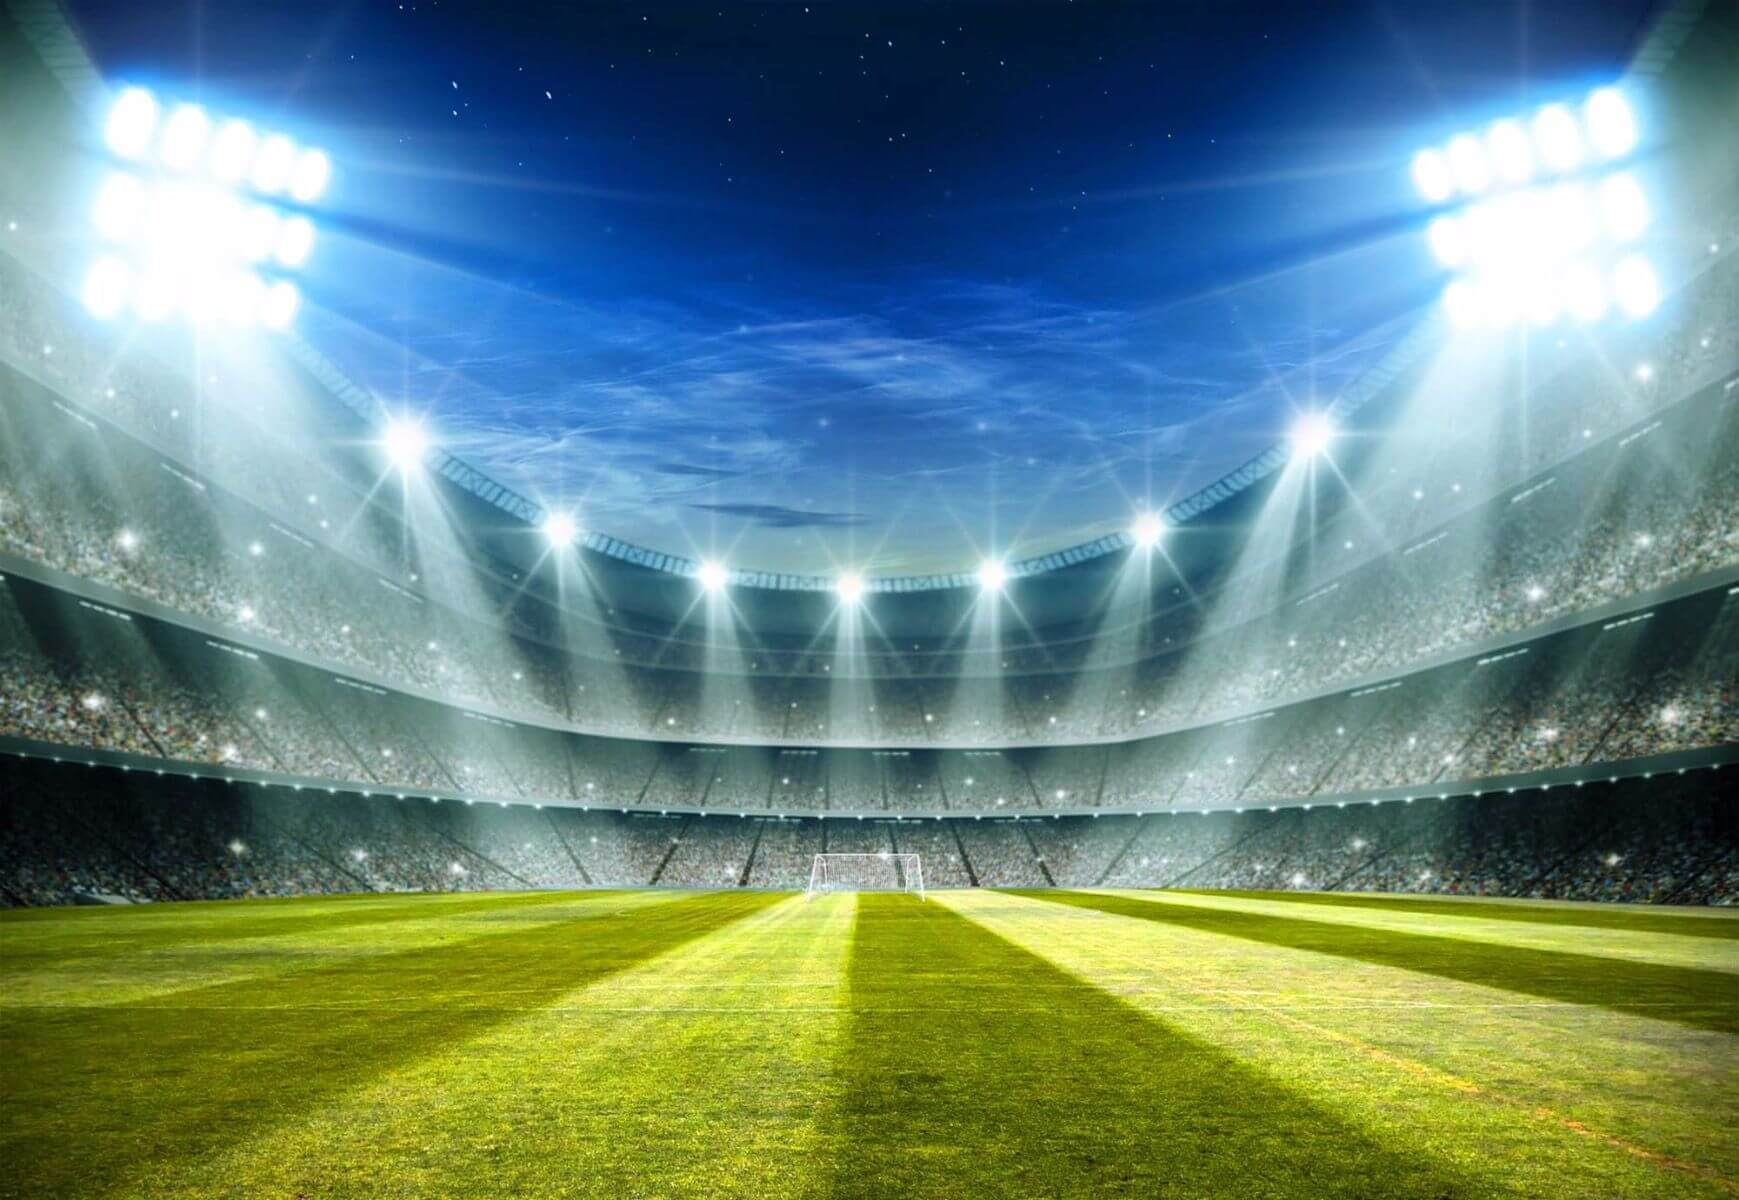 Football Stadium 2 Wallpaper Mural: Giant Paper Wallpaper 368x254cm Football Stadium Champions